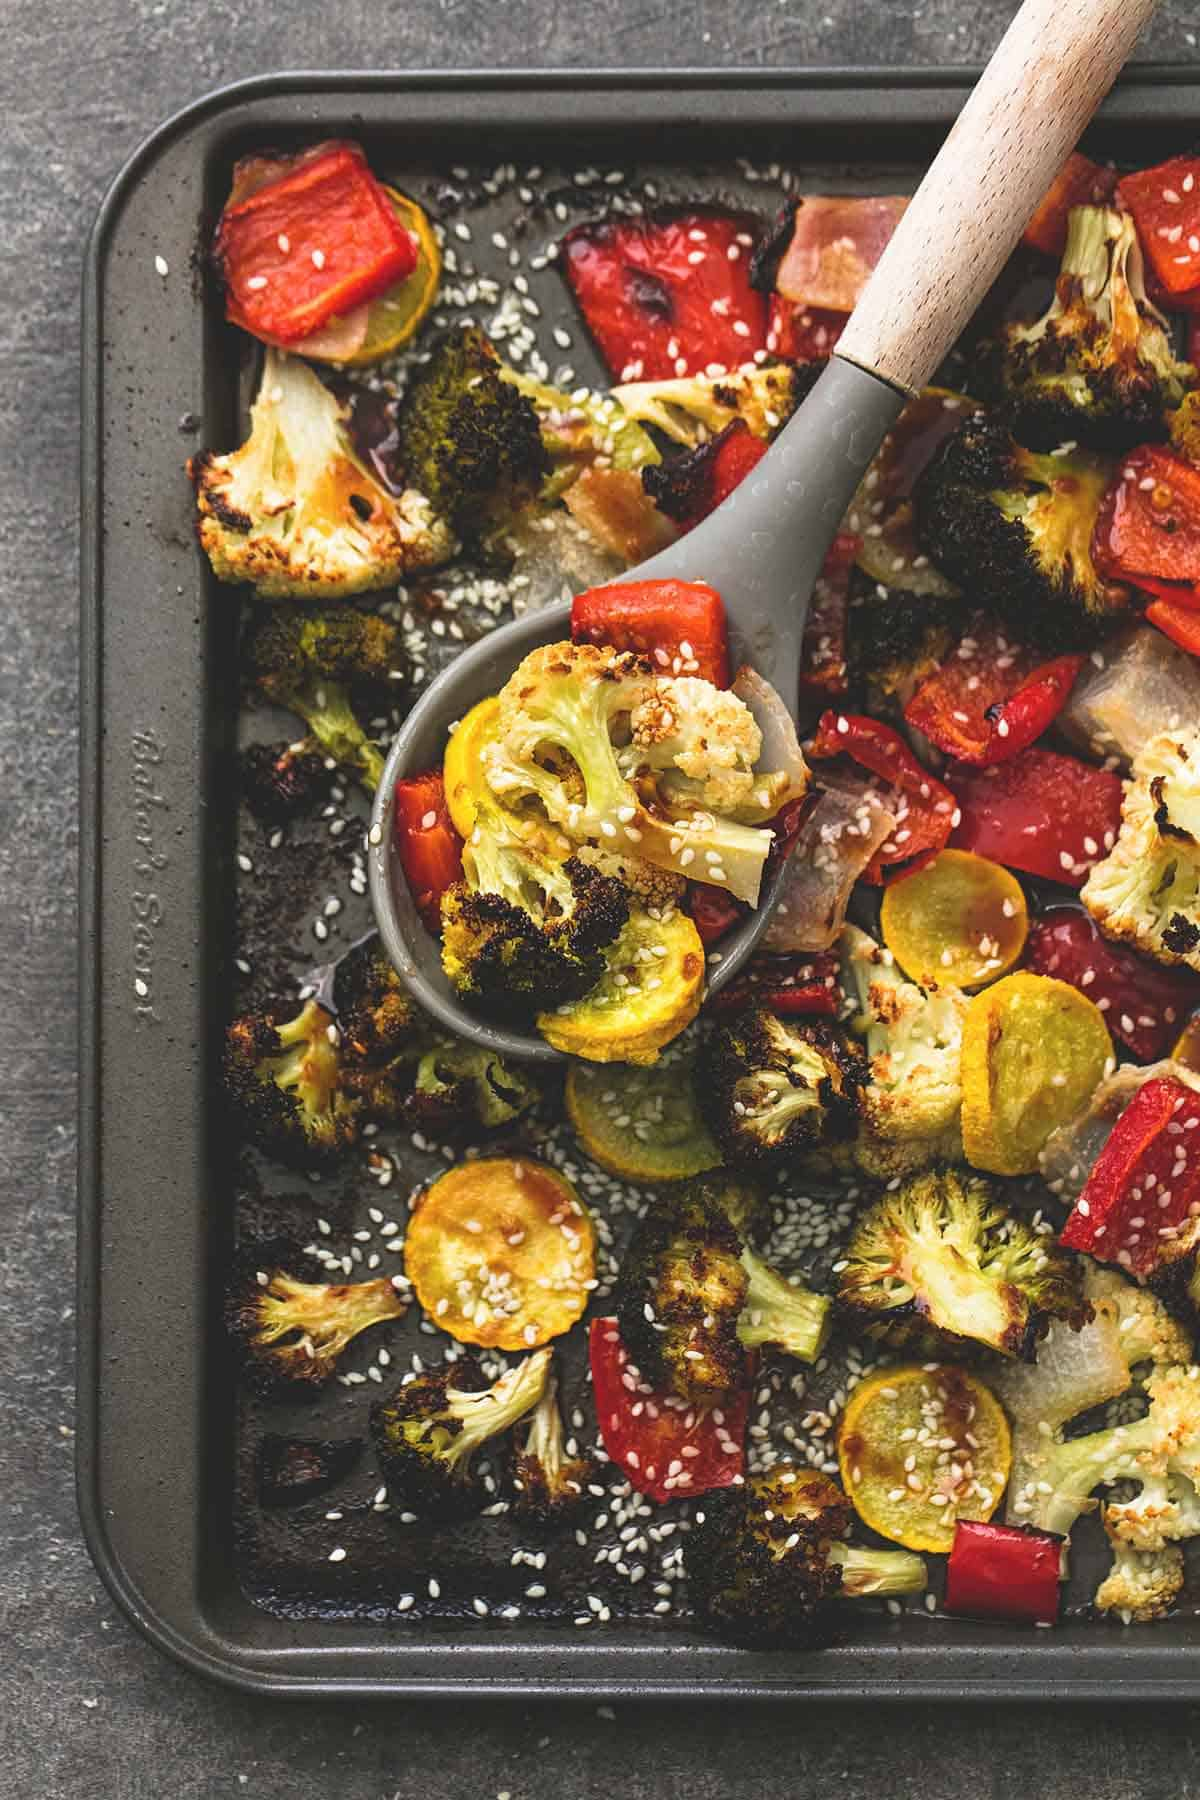 Sheet Pan Roasted Asian Vegetable Medley | lecremedelacrumb.com